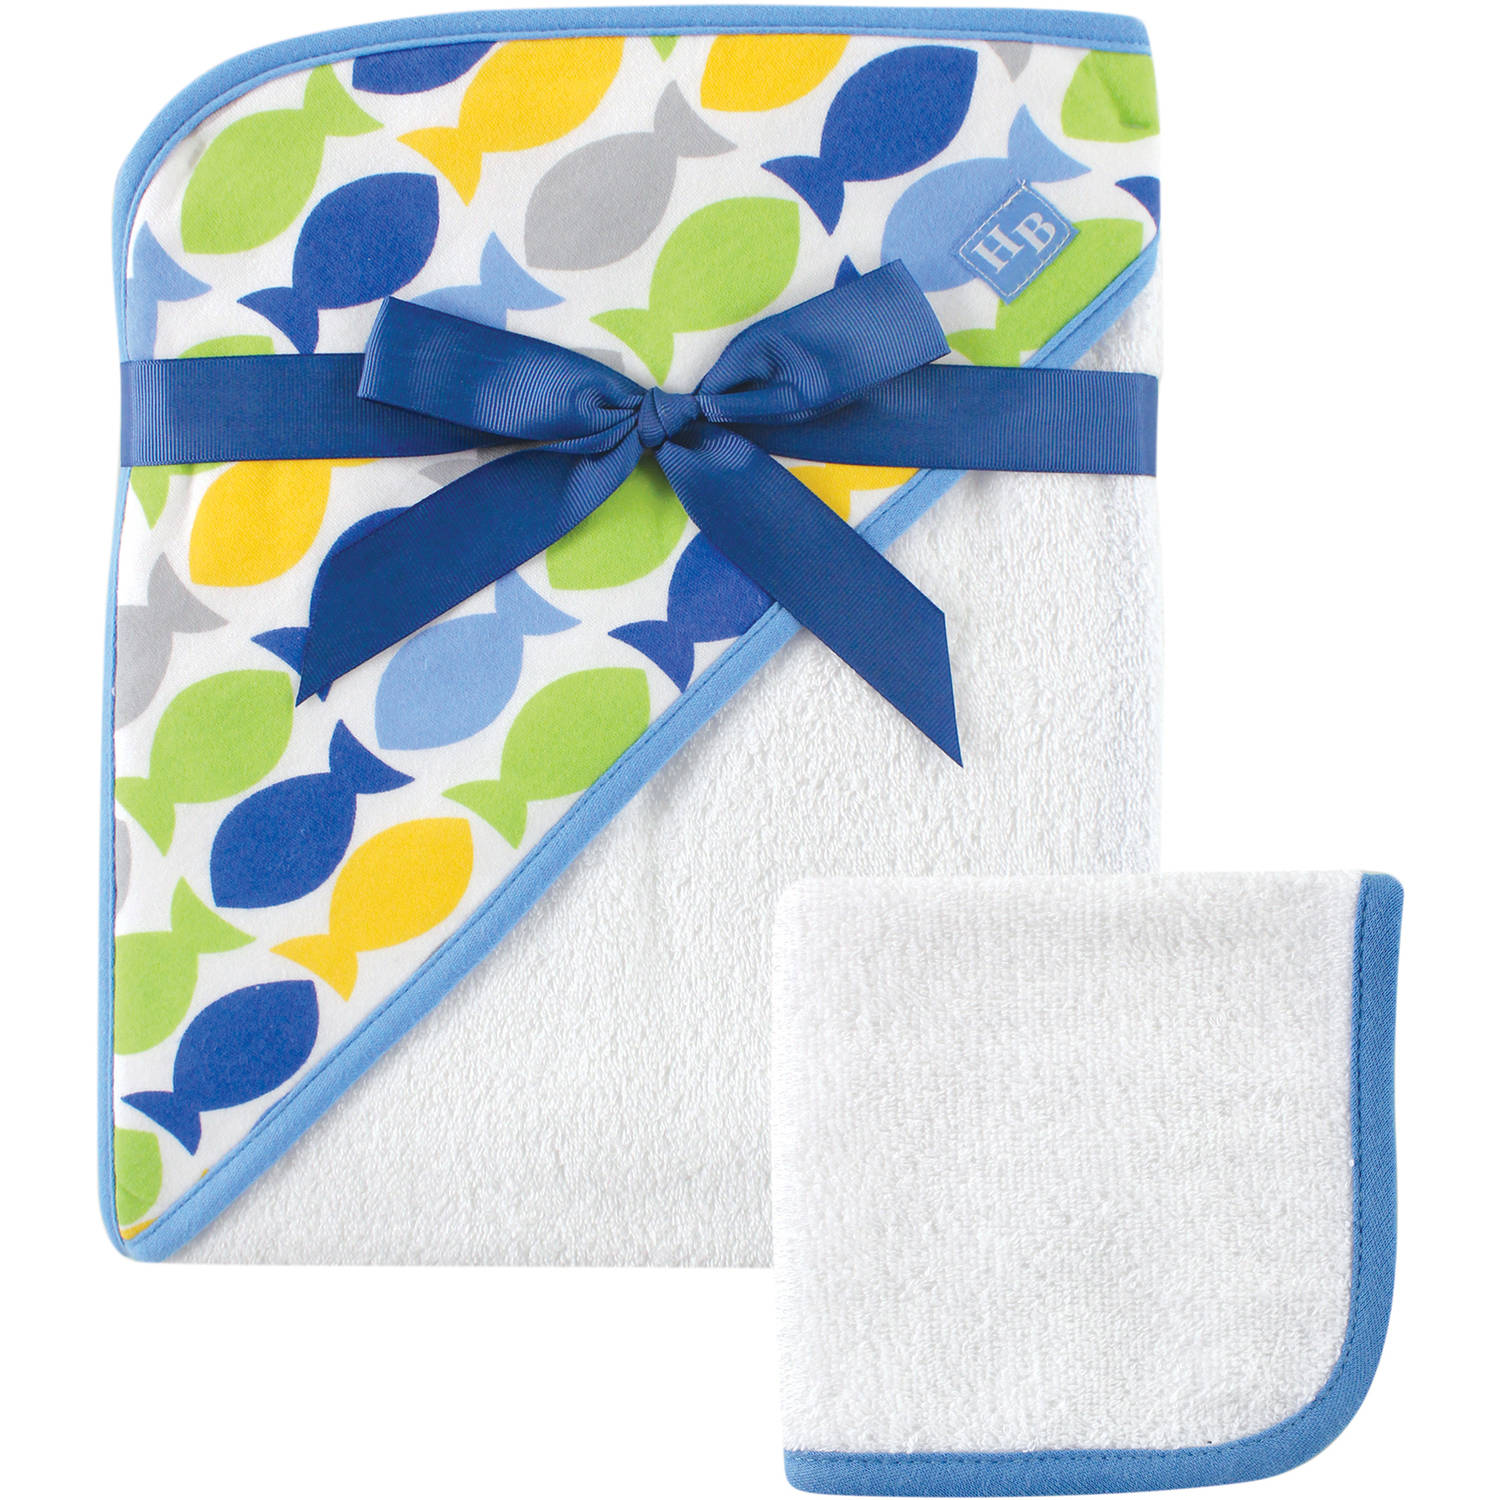 Hudson Baby Woven Hooded Towel with Washcloth, Blue Gray